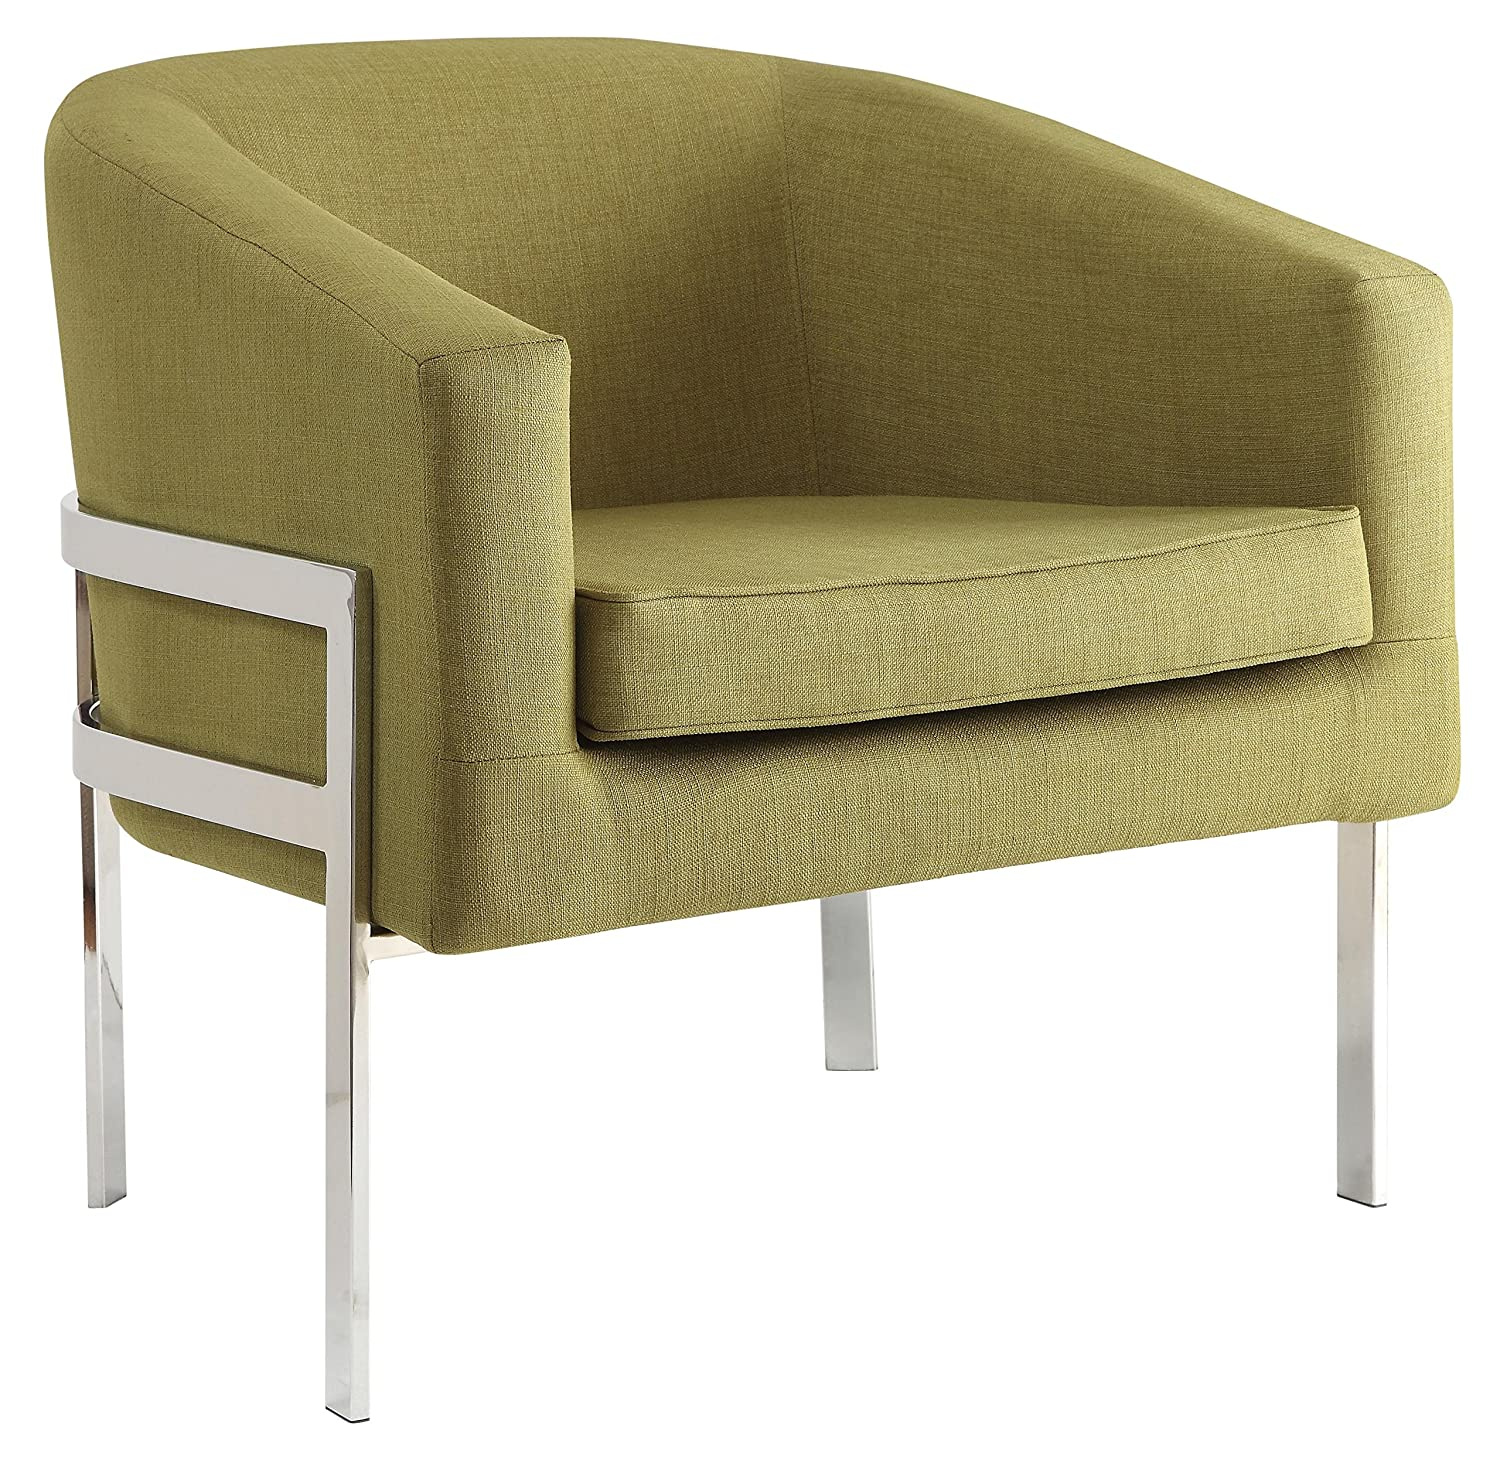 Amazon.com: Coaster Contemporary Accent Chair With Metal Frame In Green:  Kitchen U0026 Dining